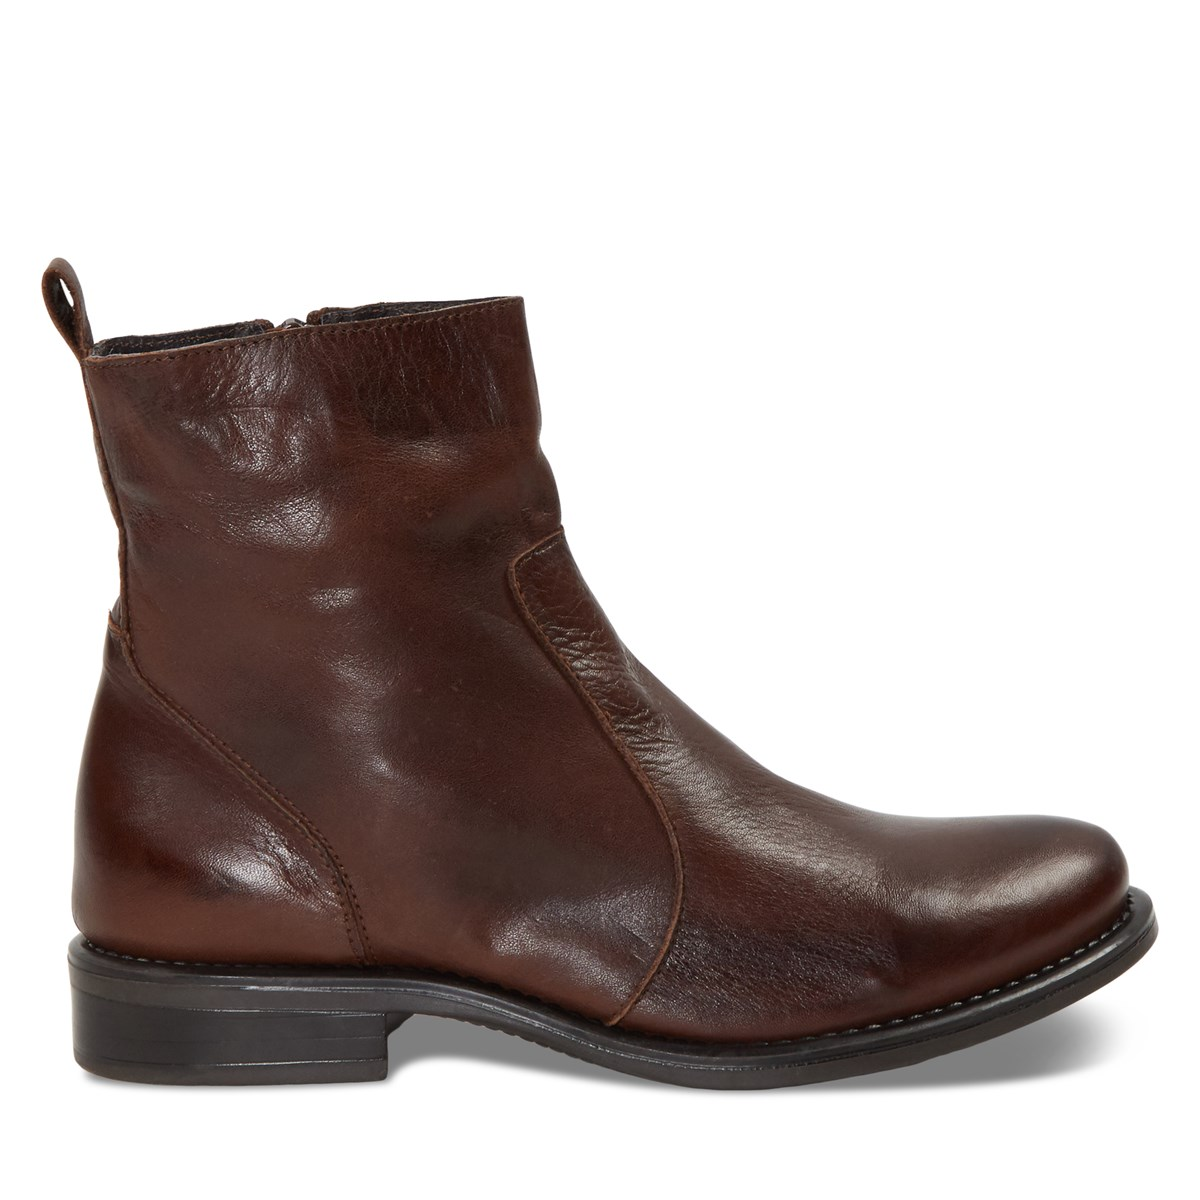 Women's Margot Ankle Boots in Brown